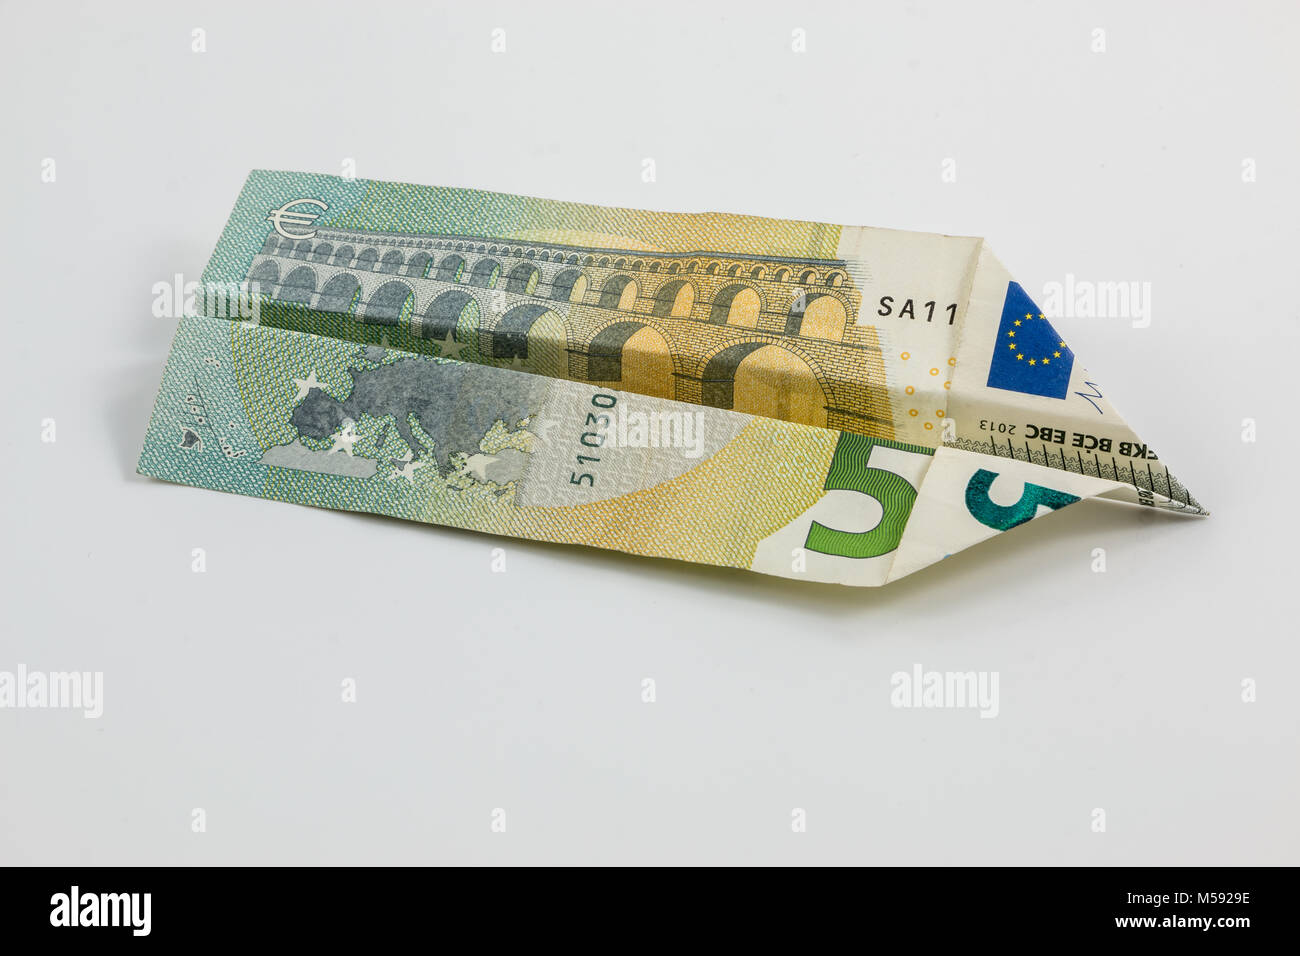 Euro banknotes and white background - Stock Image